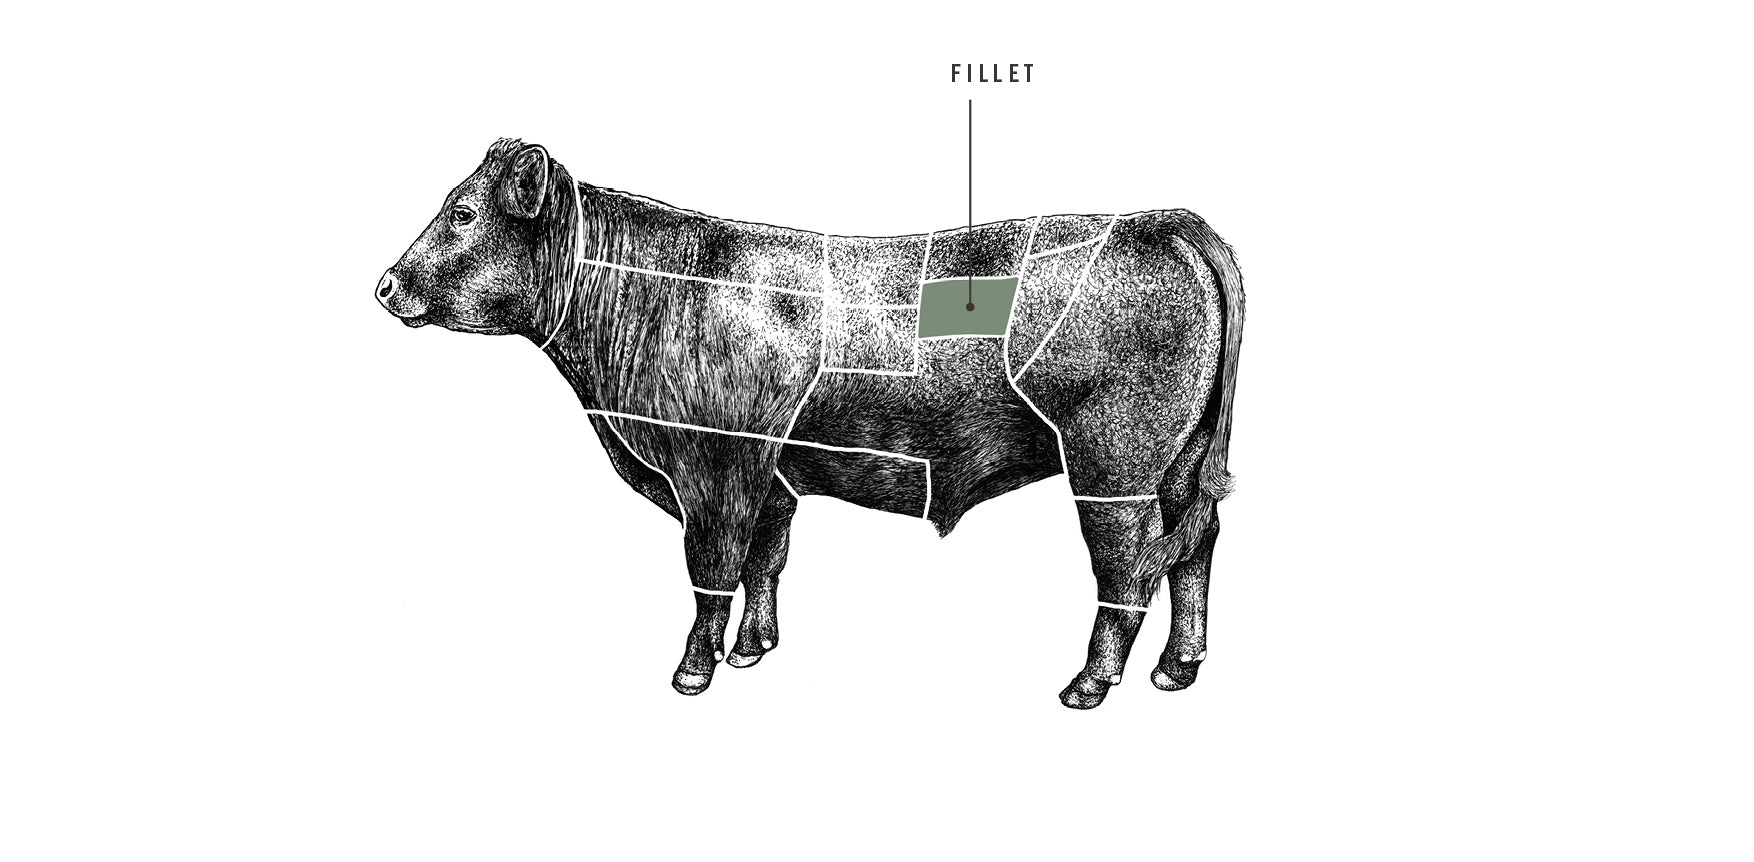 Grass Fed Beef Fillet meat cuts diagram